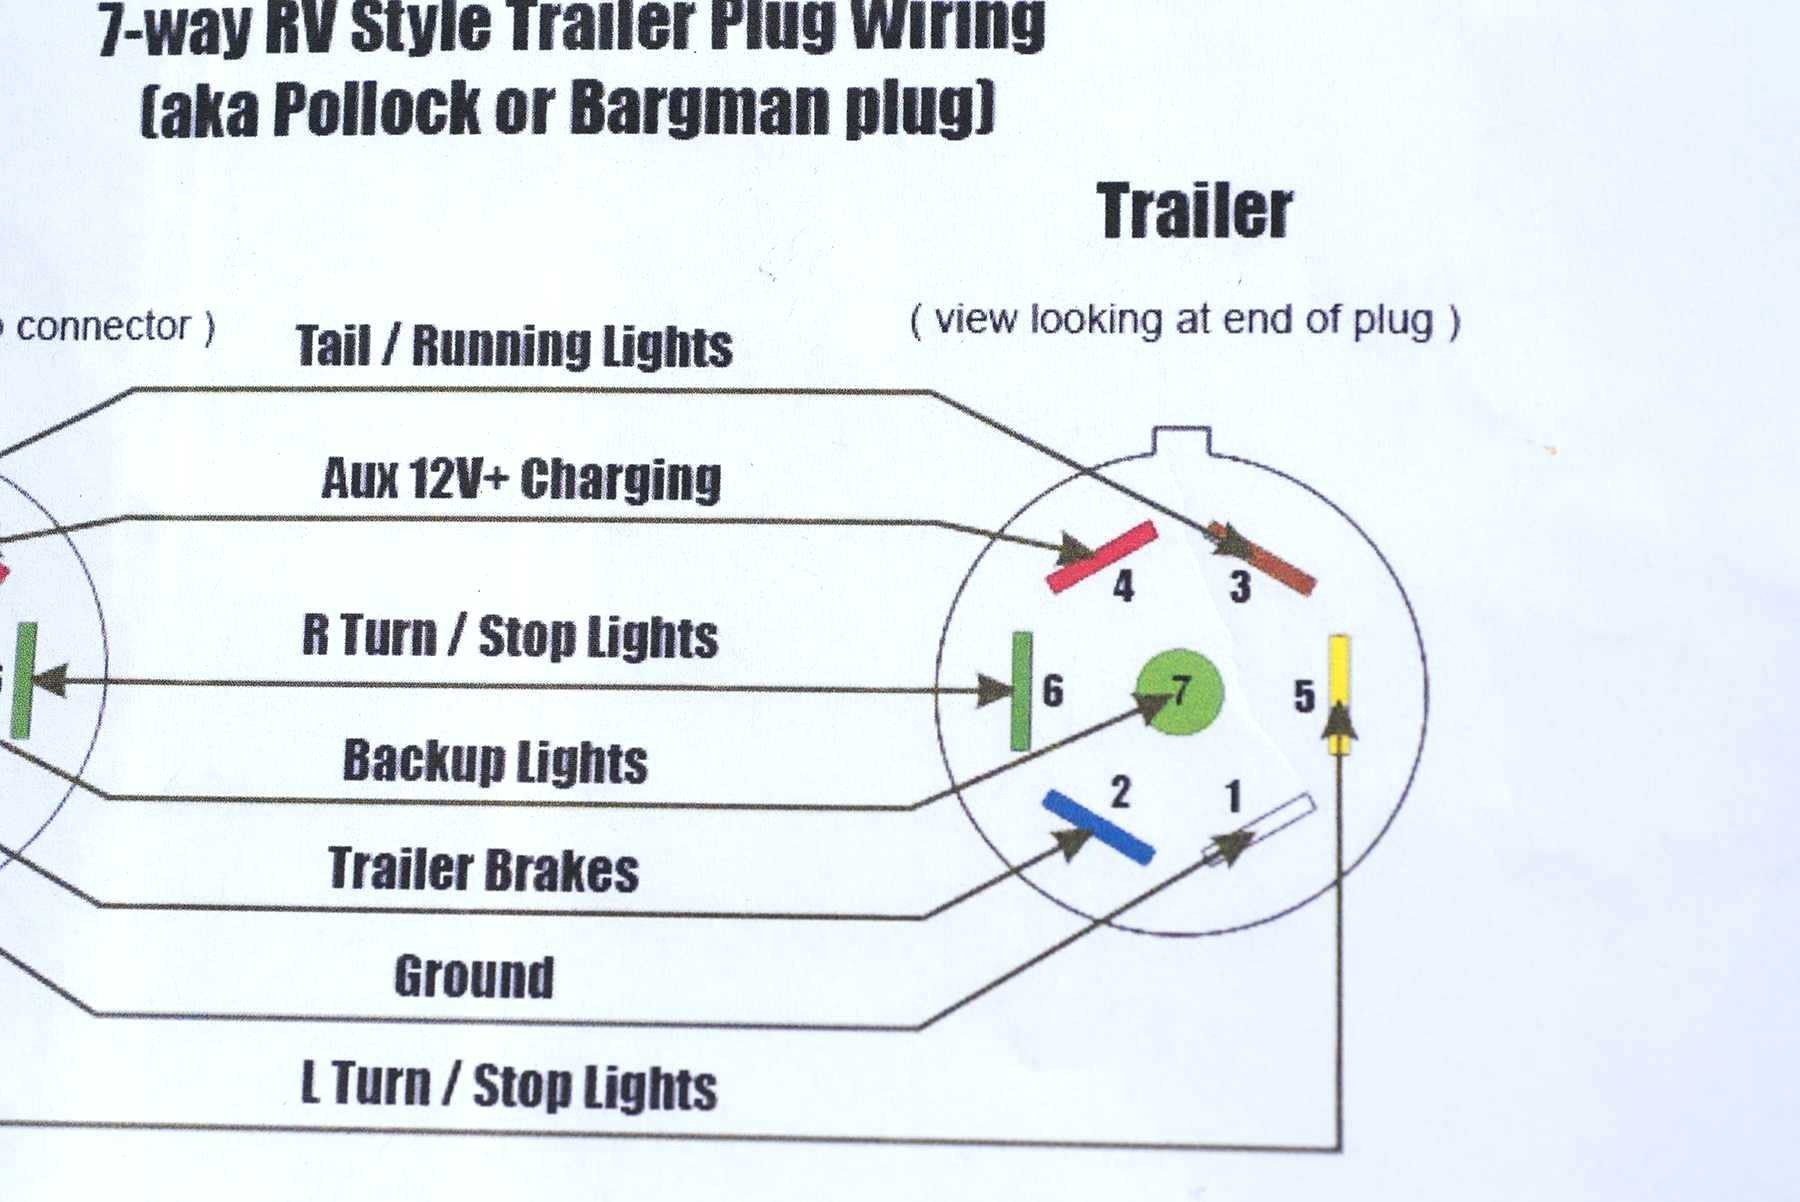 Chevy 7 Pin Wiring Diagram - Wiring Diagrams Click - 7 Way Trailer Plug Wiring Diagram Chevy